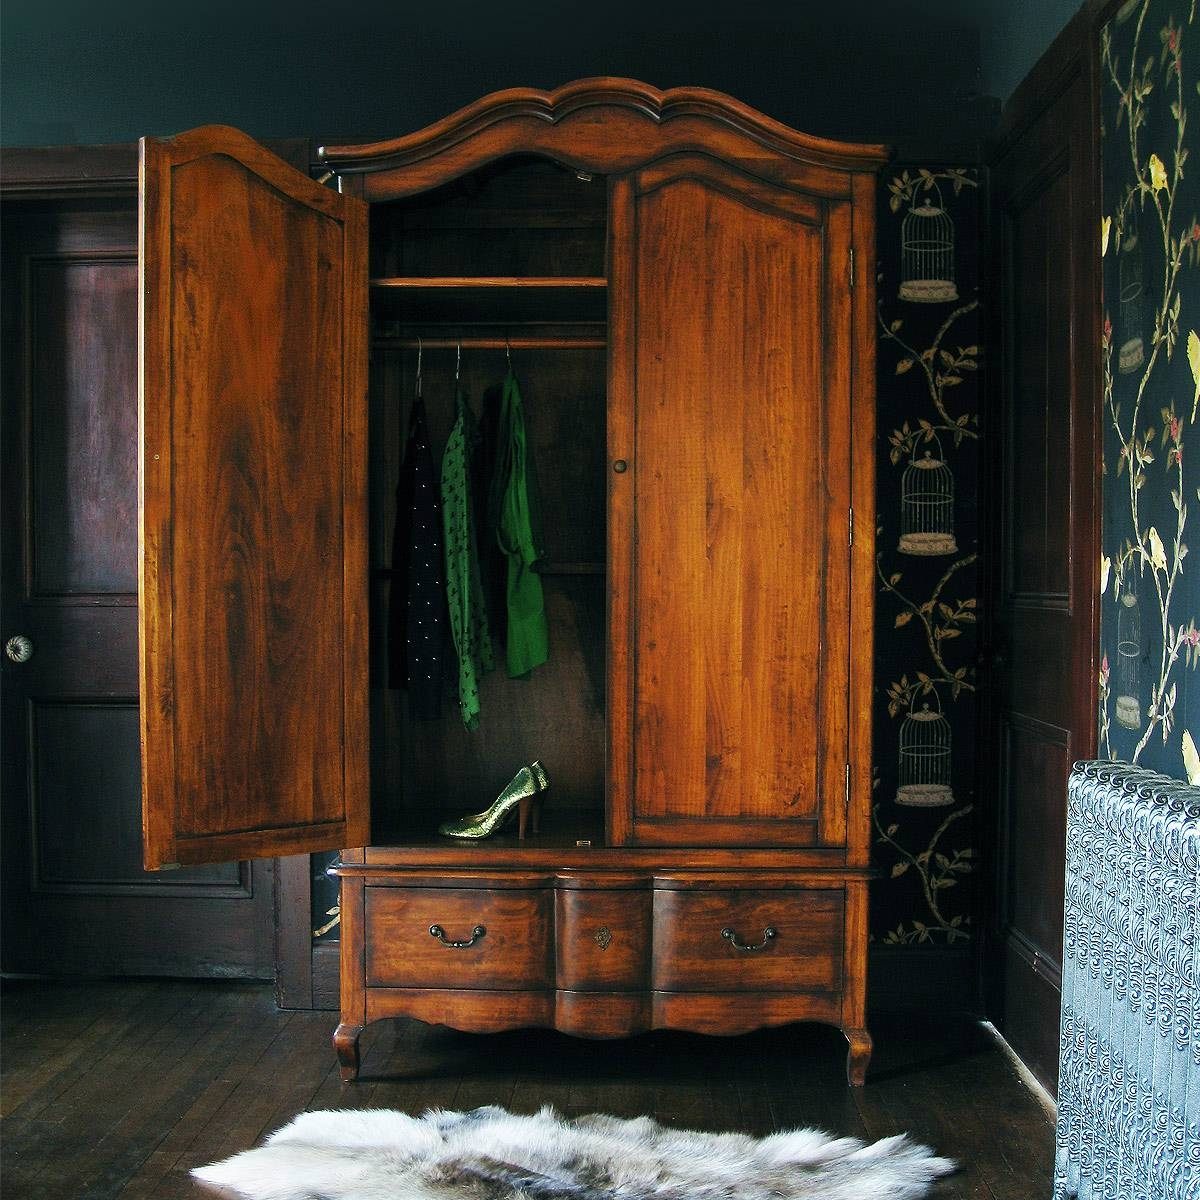 Antique Wardrobes - Magiel in Victorian Wardrobes for Sale (Image 4 of 15)